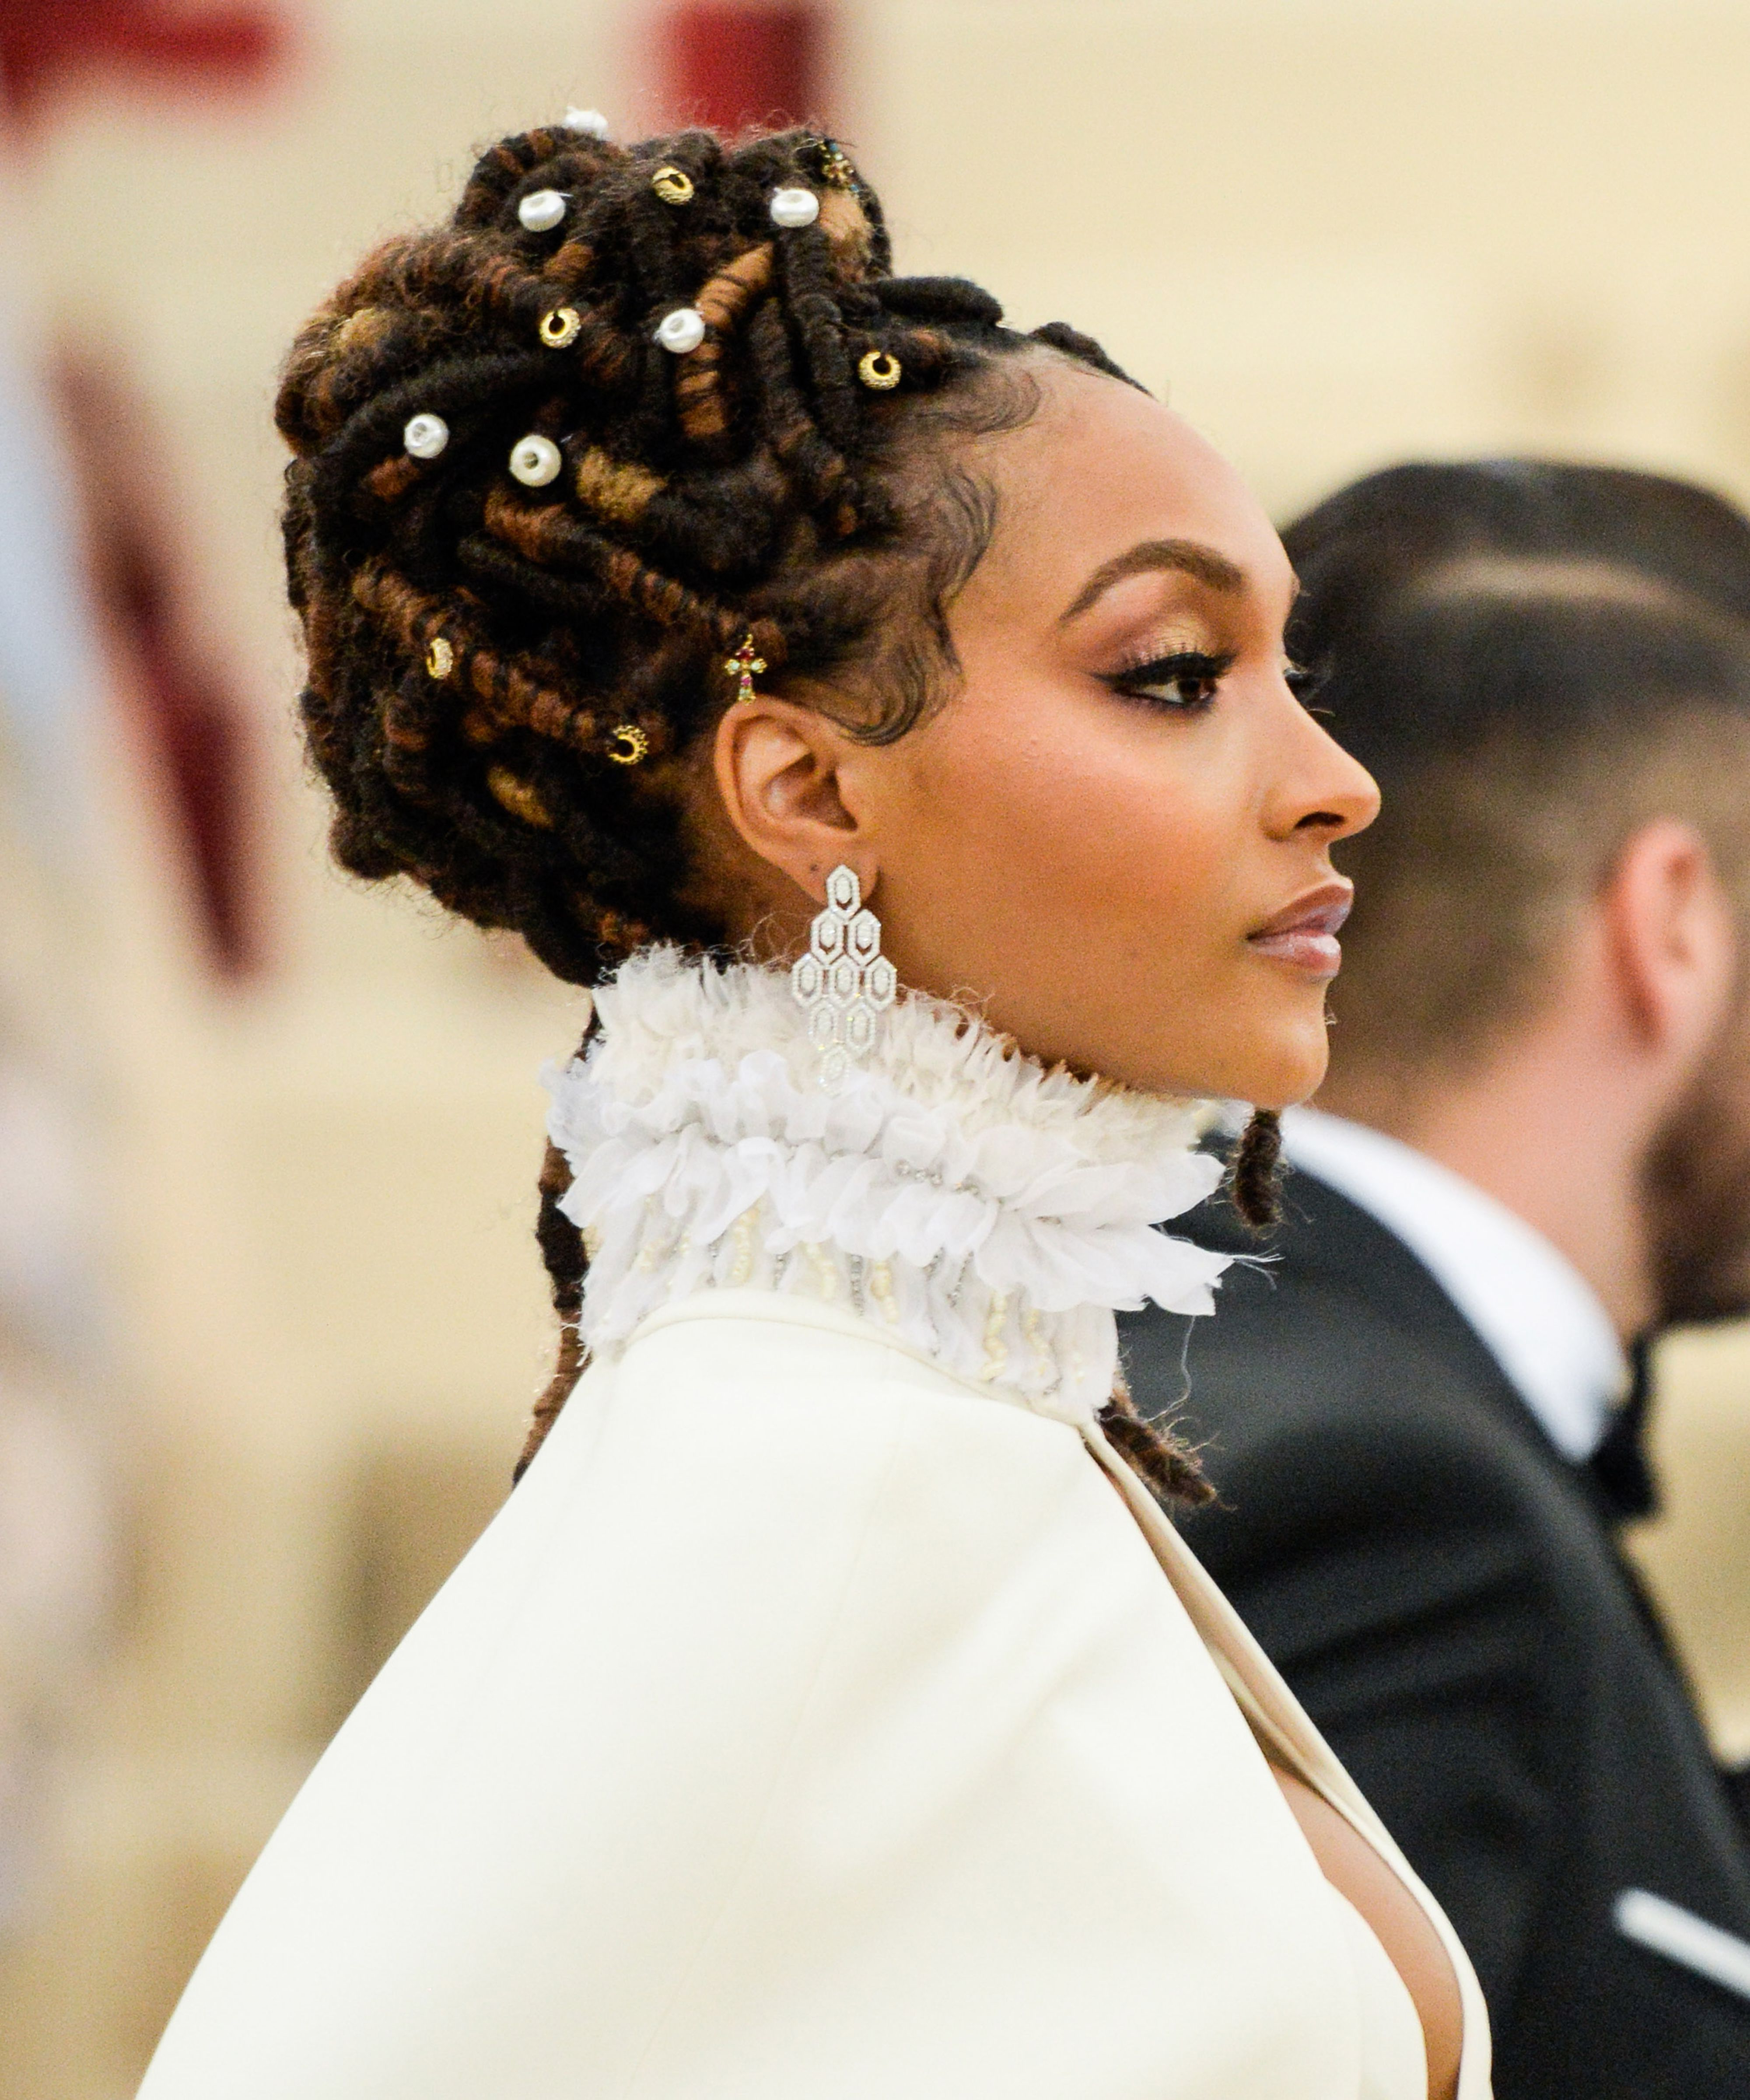 2019 Blinged Out Bun Updo Hairstyles Throughout Loc Updos, Braids, And Twists For Wedding Season (View 2 of 20)